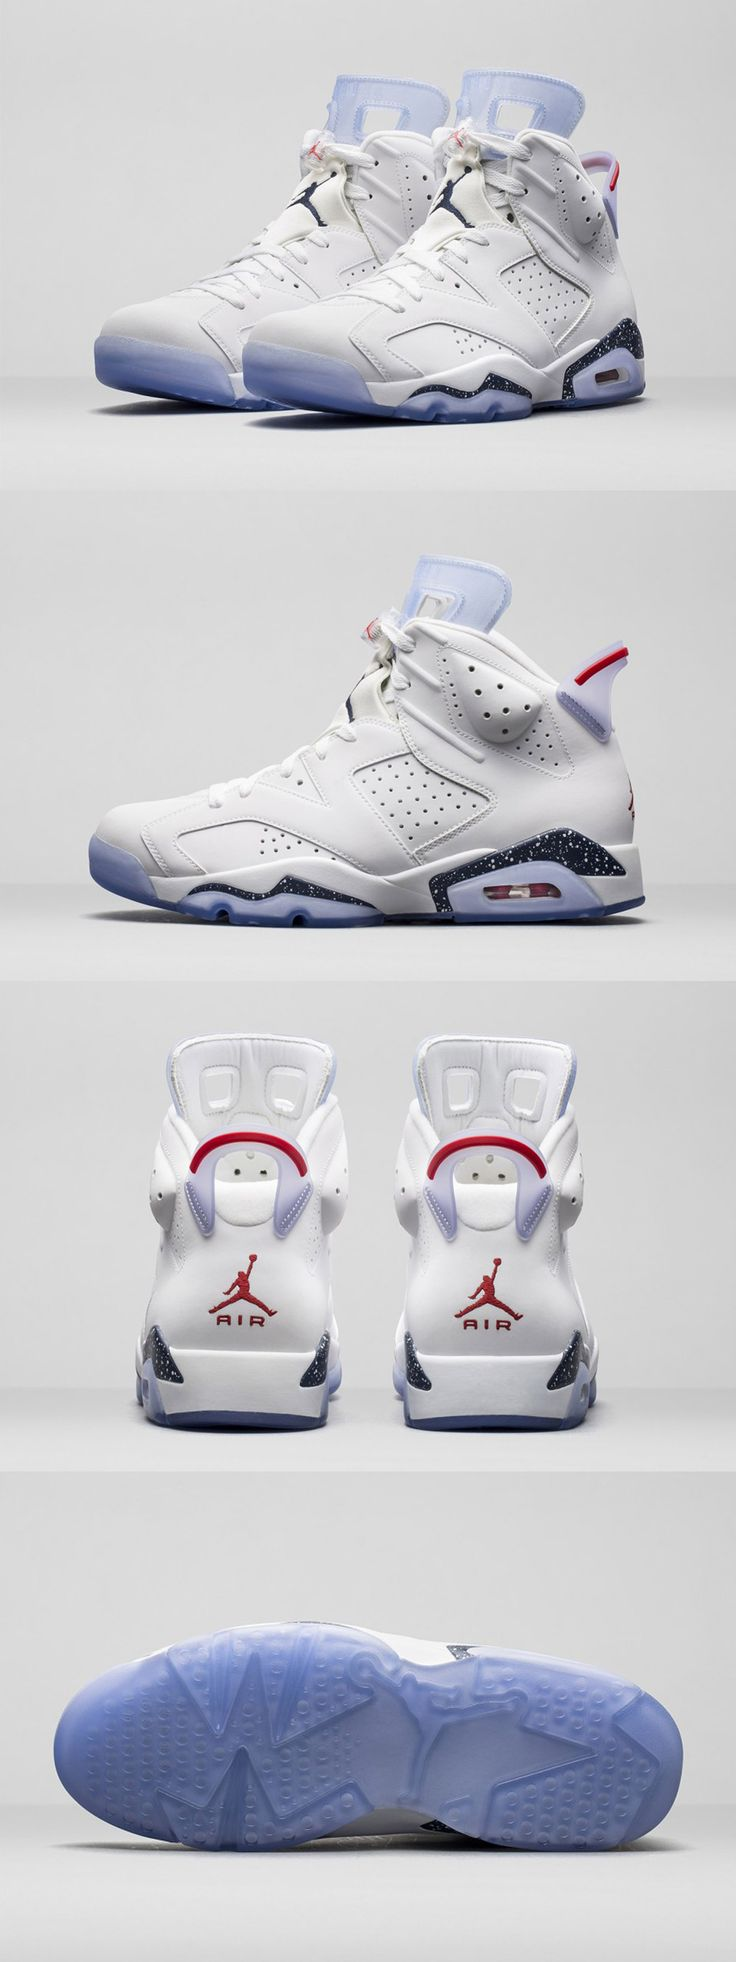 Repin It and Get it immediately! Cheap Jordan Shoes outlet #Air #Jordan only $57.8, not long time Lowest Price.